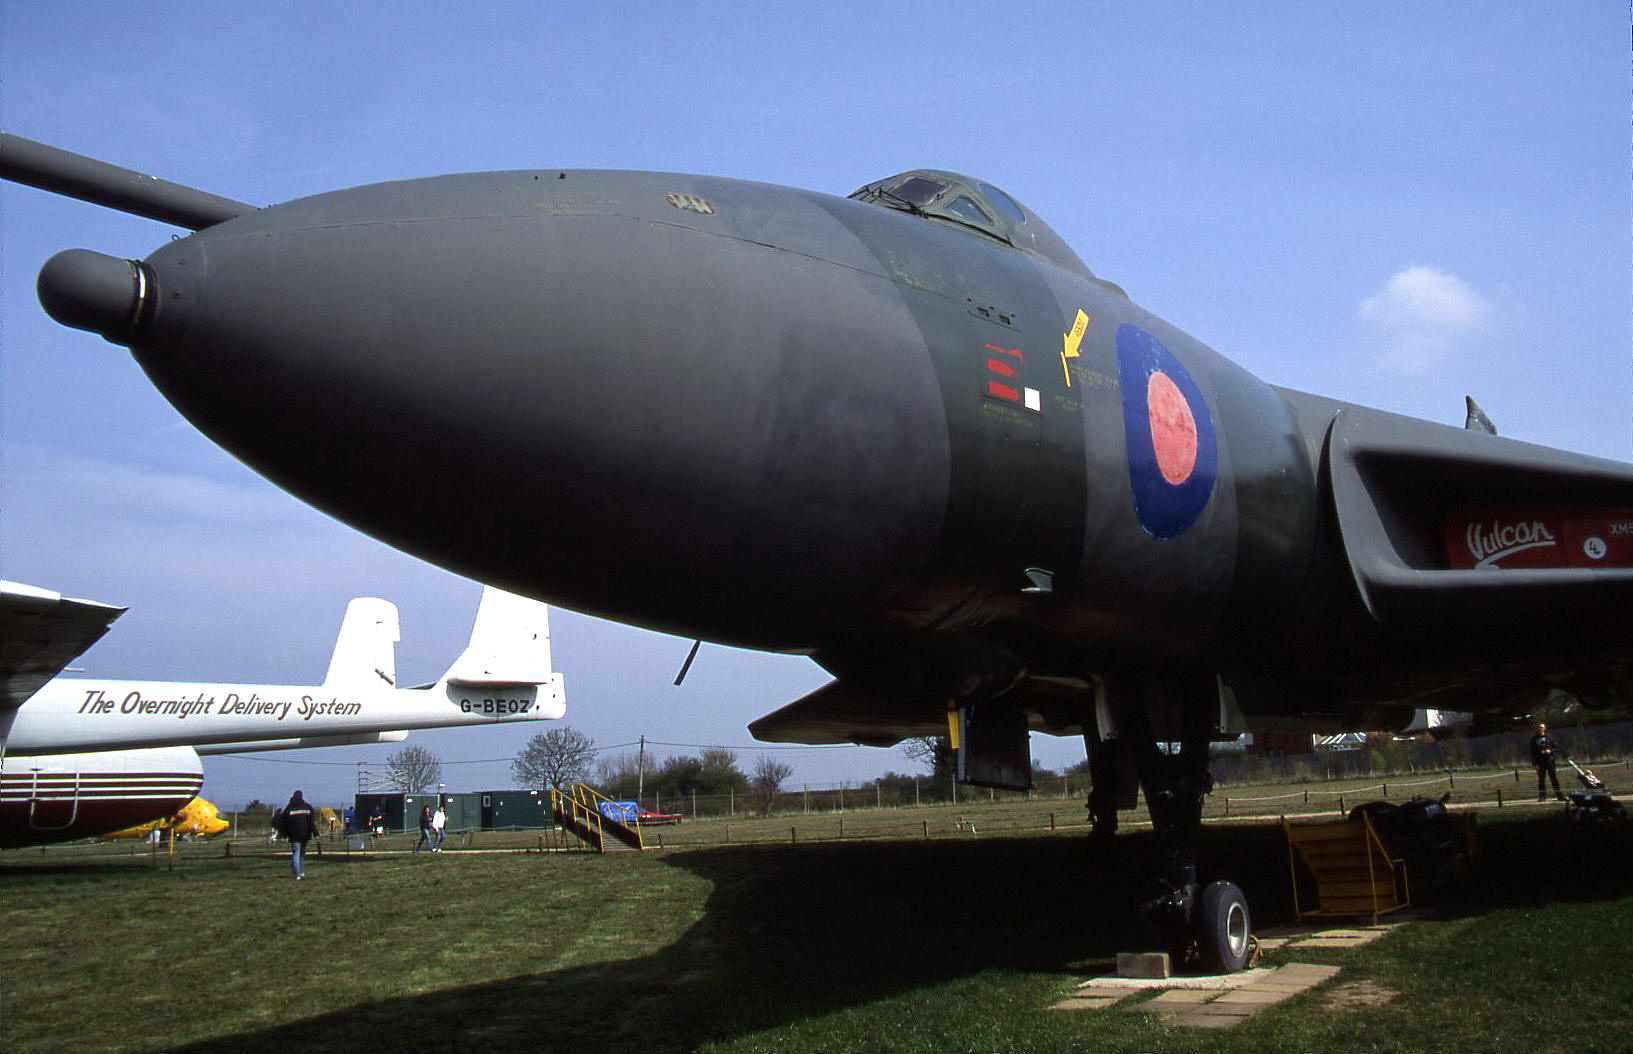 The Vulcan up close